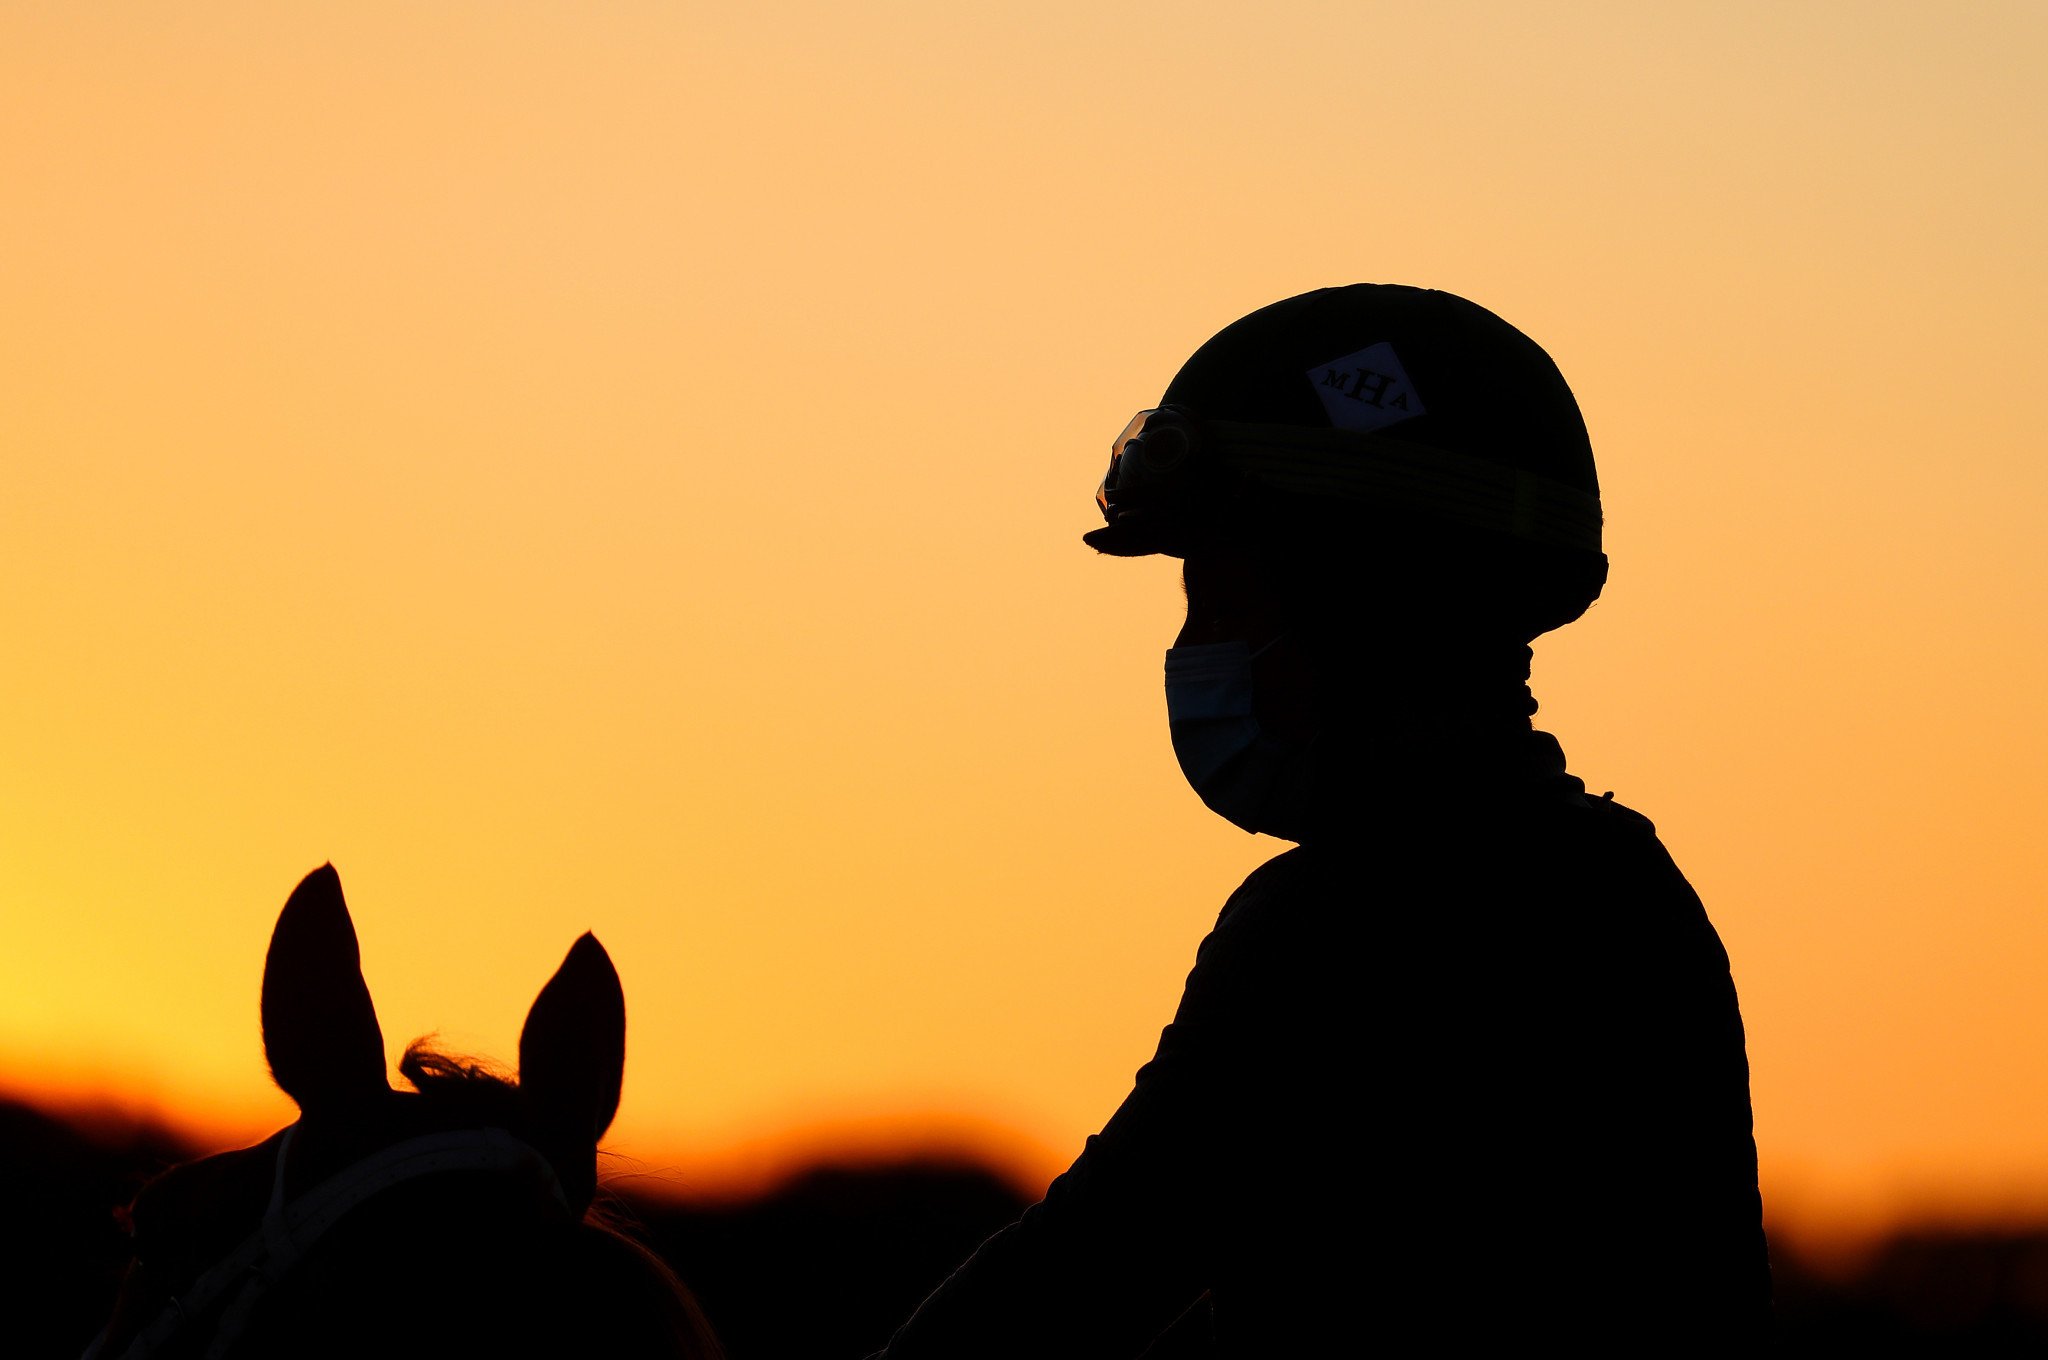 FEI approves return-of-competition bylaws amid equine virus outbreak